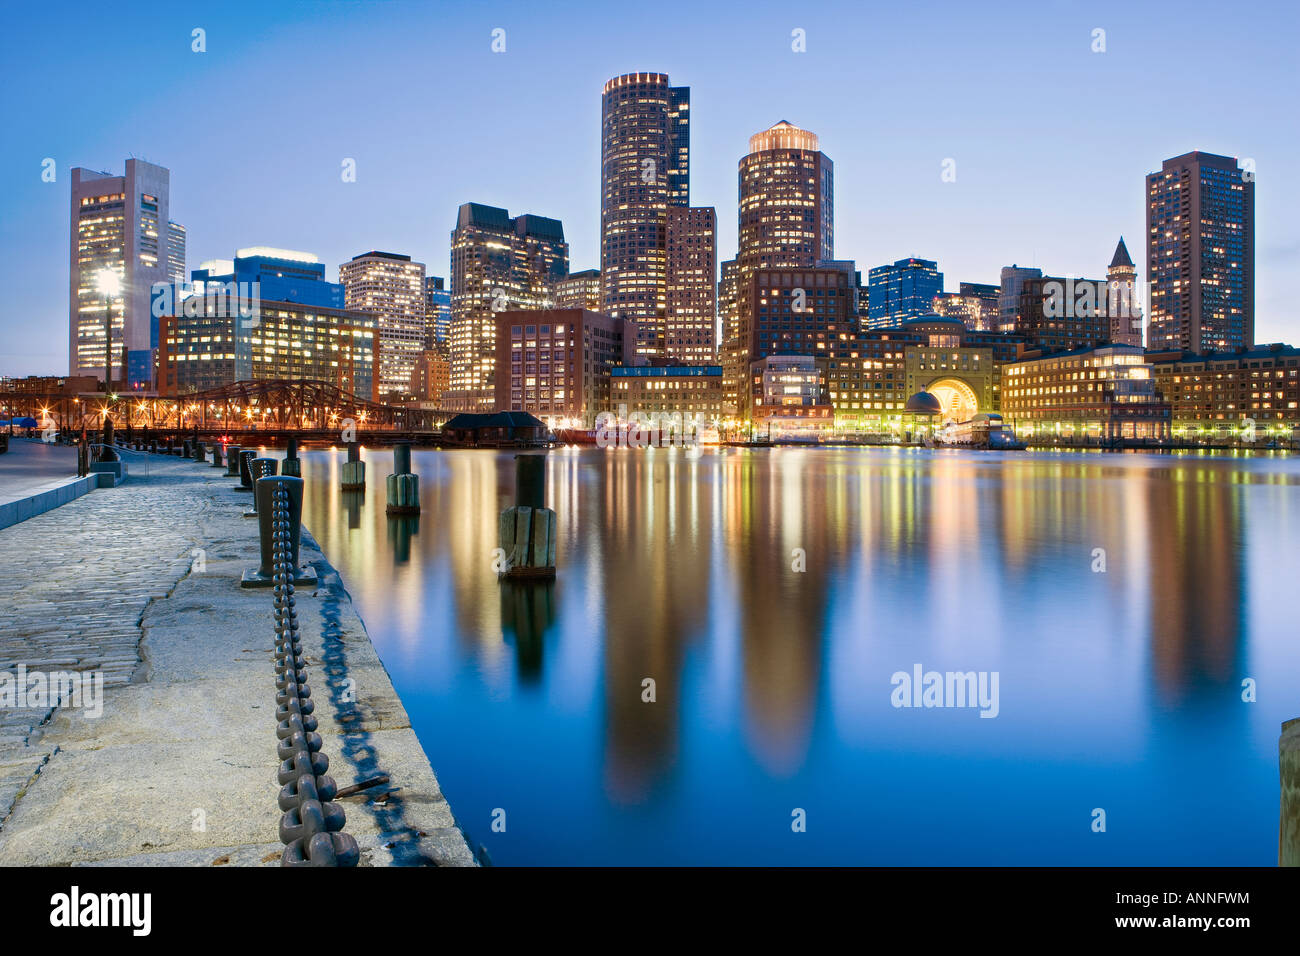 USA Boston Massachusetts Boston financial skyline vue depuis la jetée du ventilateur Photo Stock